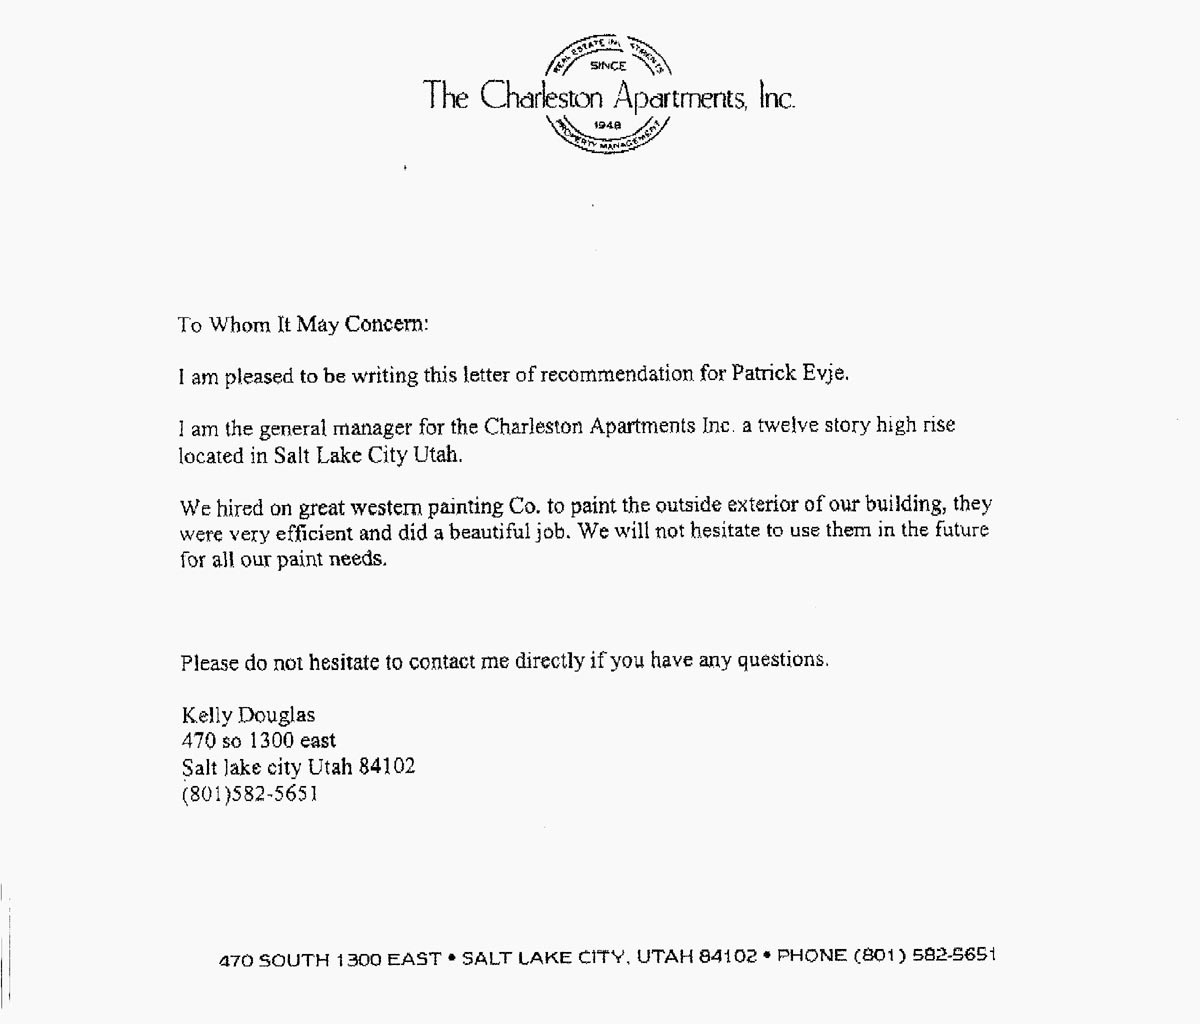 Short Recommendation Letter for Employee Fresh Great Western Painting High Rise Painting Buildings